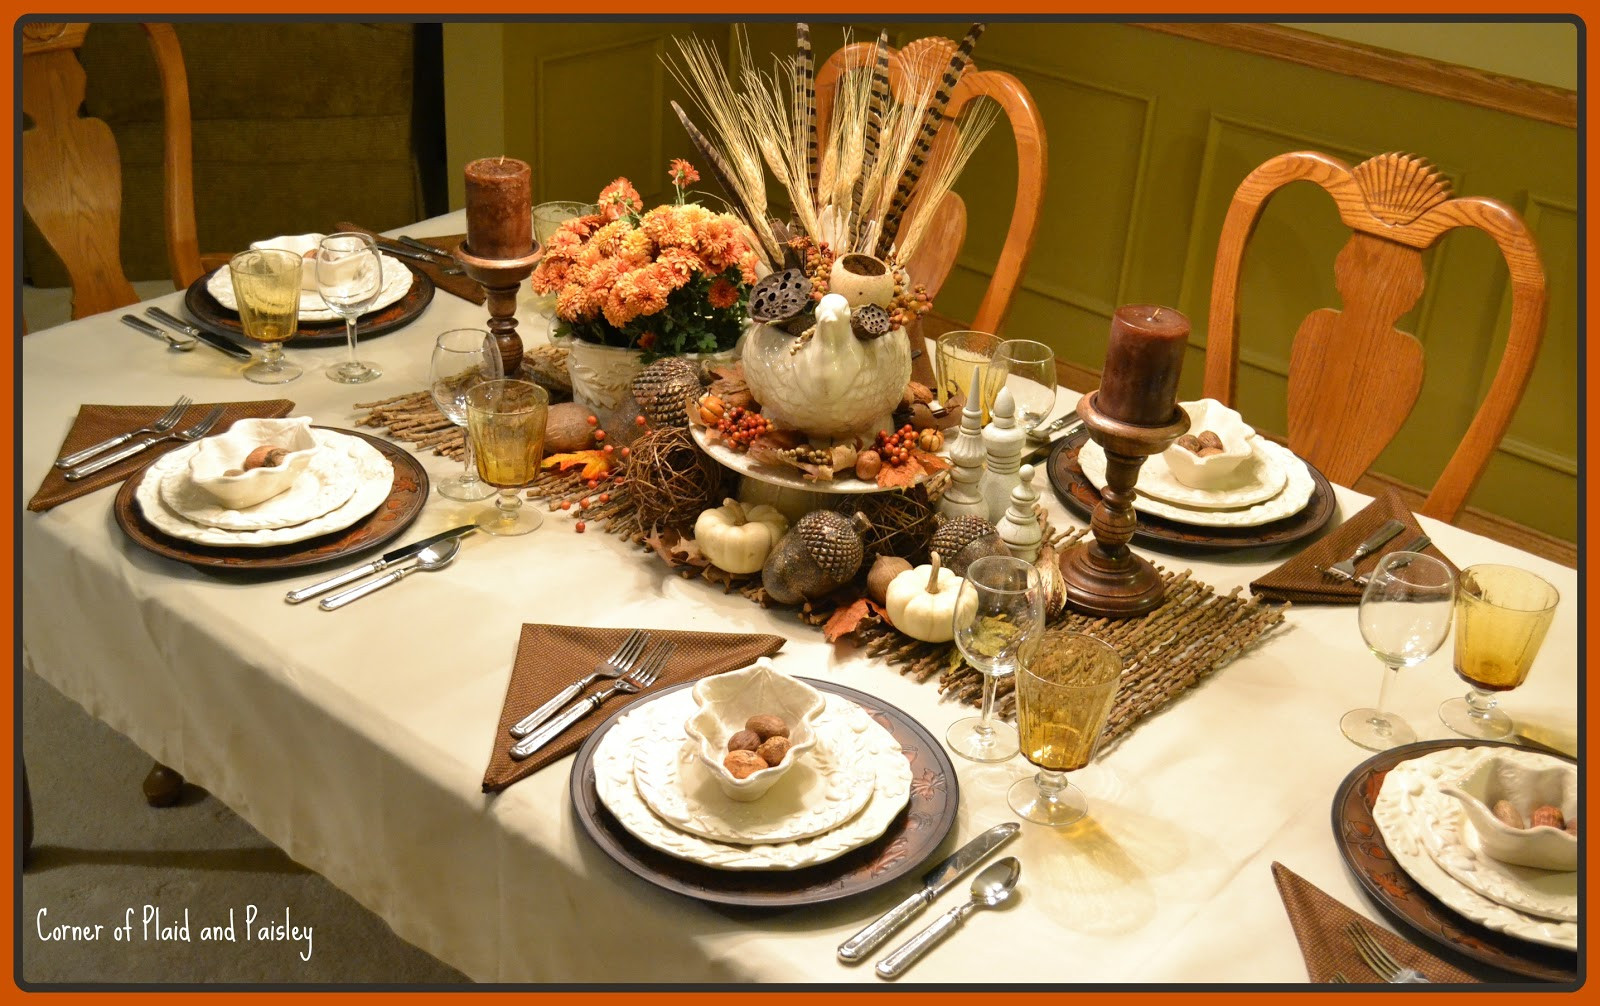 Thanksgiving Dinner Table Settings  Corner of Plaid and Paisley Thanksgiving Table Not the